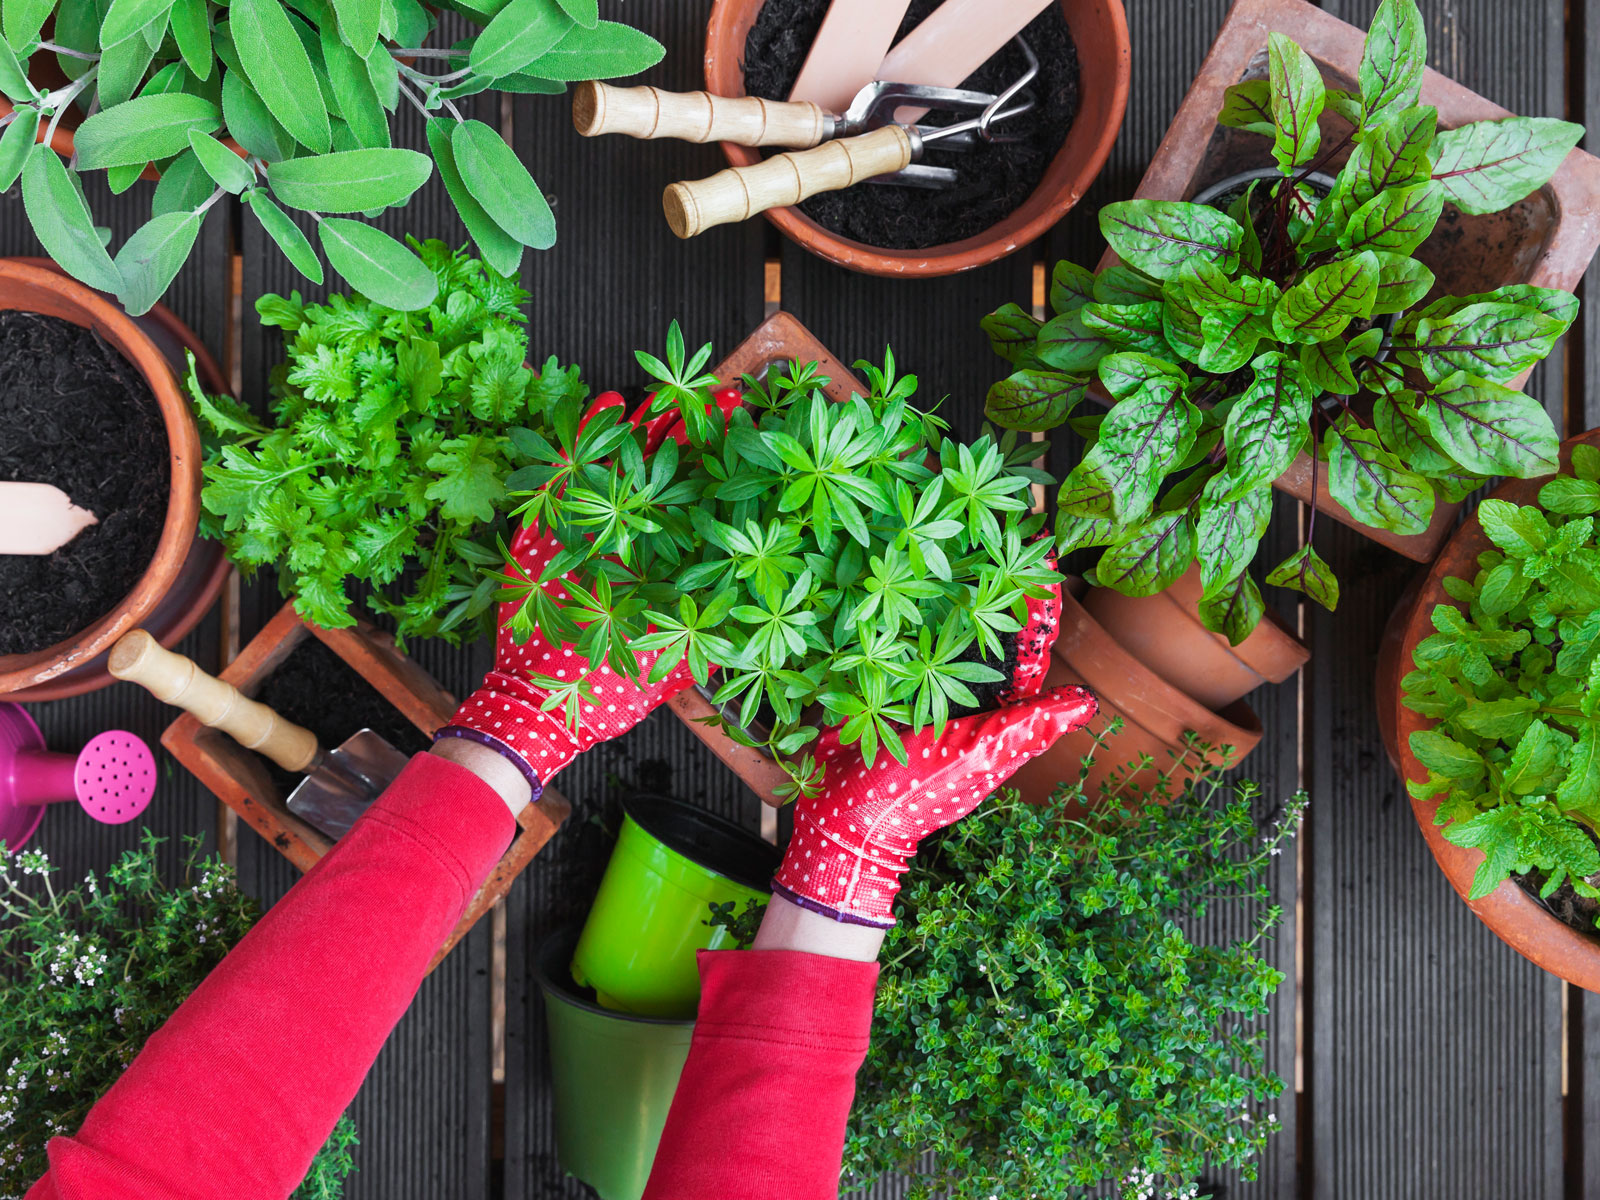 10 Tools You Need to Tend Your Organic Vegetable Garden